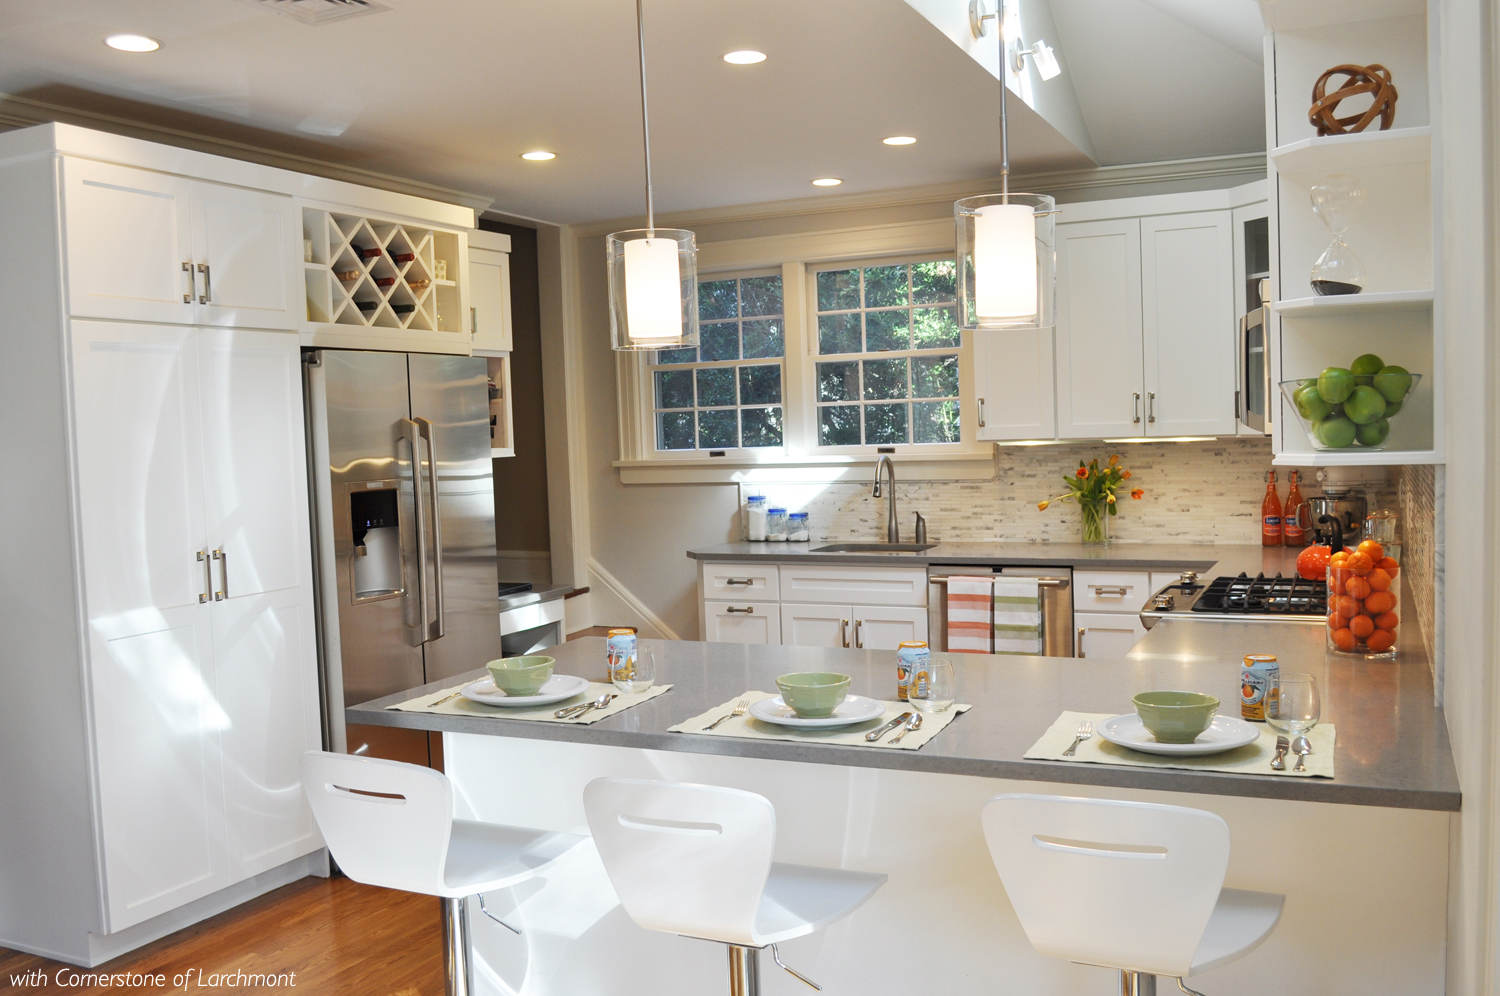 KAM DESIGN LLC_Kitchen Remodel_Soft Modern Kitchen_White Kitchen Cabinets_Modern Kitchen Lighting.jpg